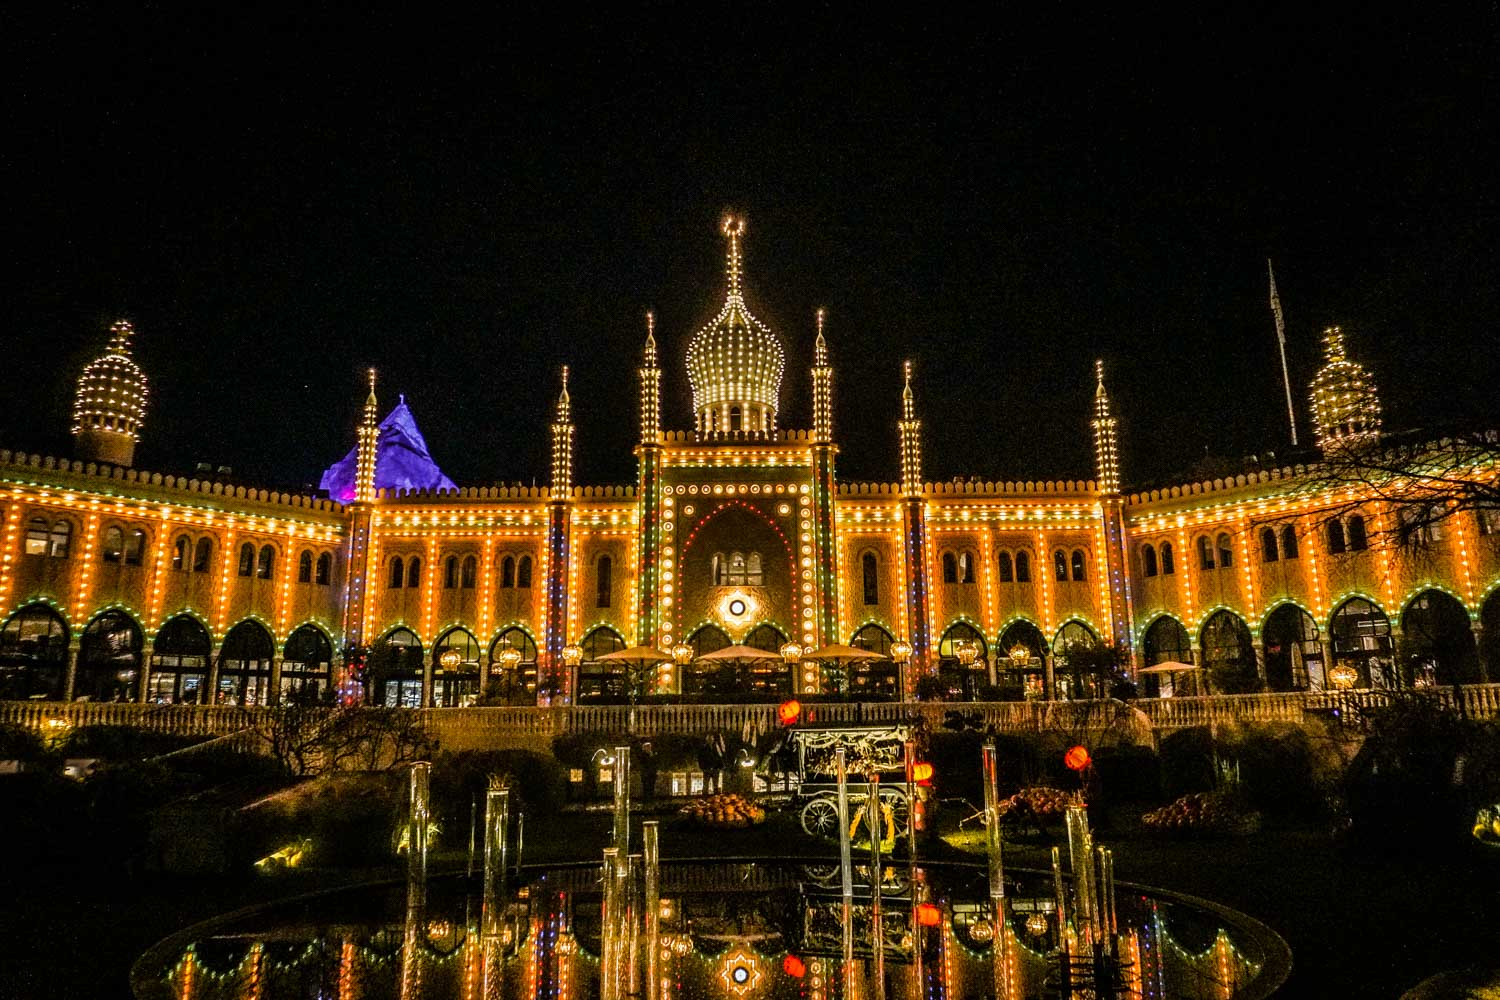 Visiting the magical Tivoli Gardens